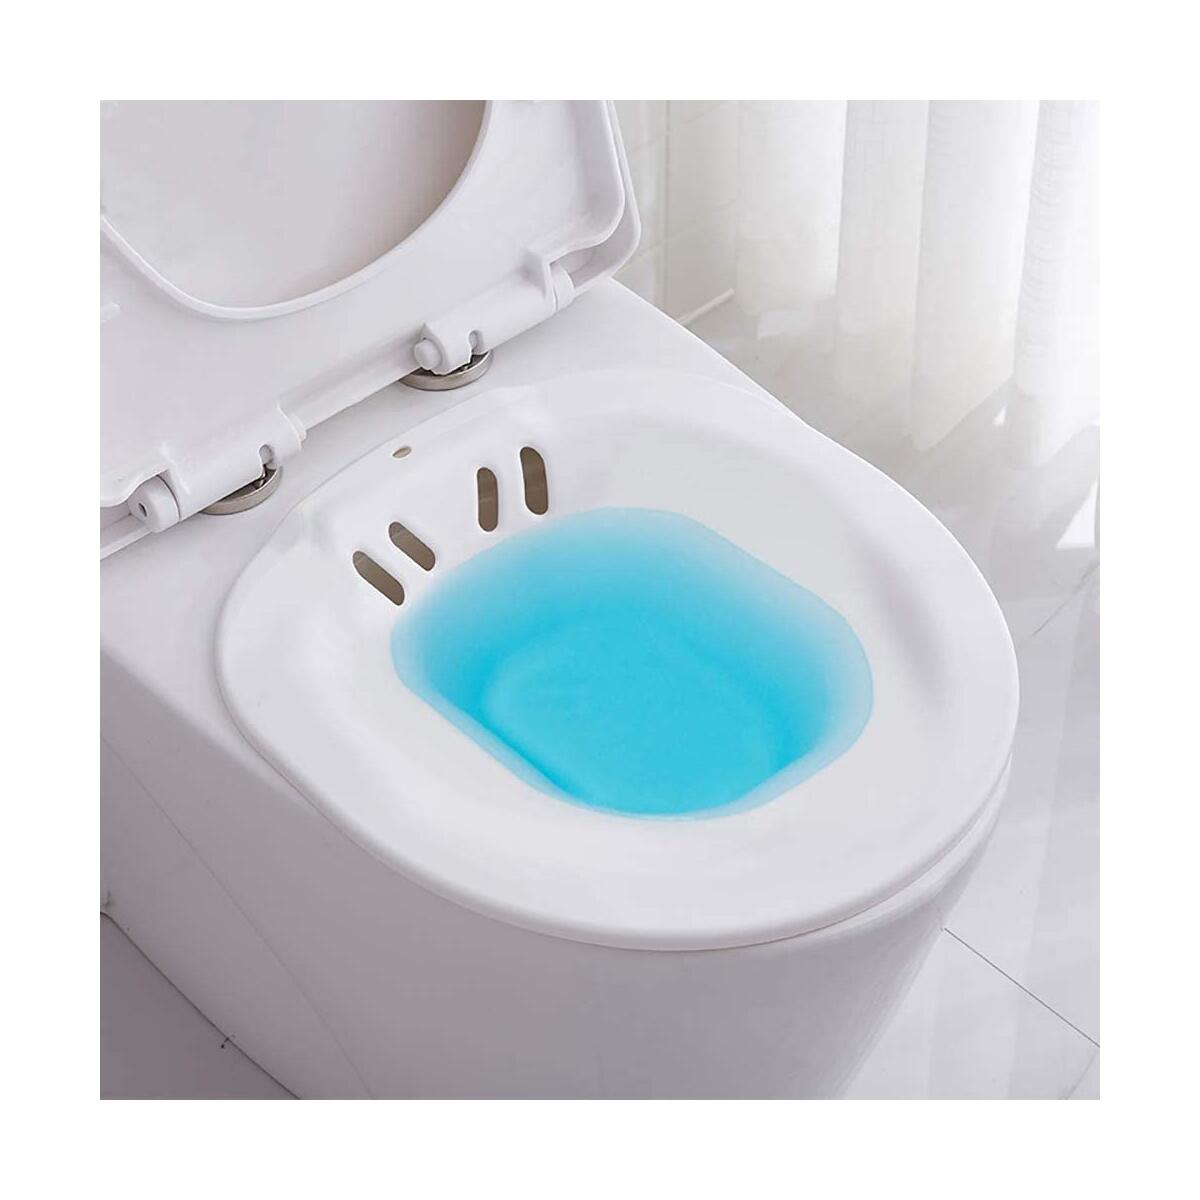 Sitz Bath for Toilet Seat, CHICHENGBA Over-The-Toilet Perineal Soaking Bath for Hemorrhoids, Yoni Steam, Perfect for Pregnant Postpartum Women and Elderly,Fits Standard Toilets(White)